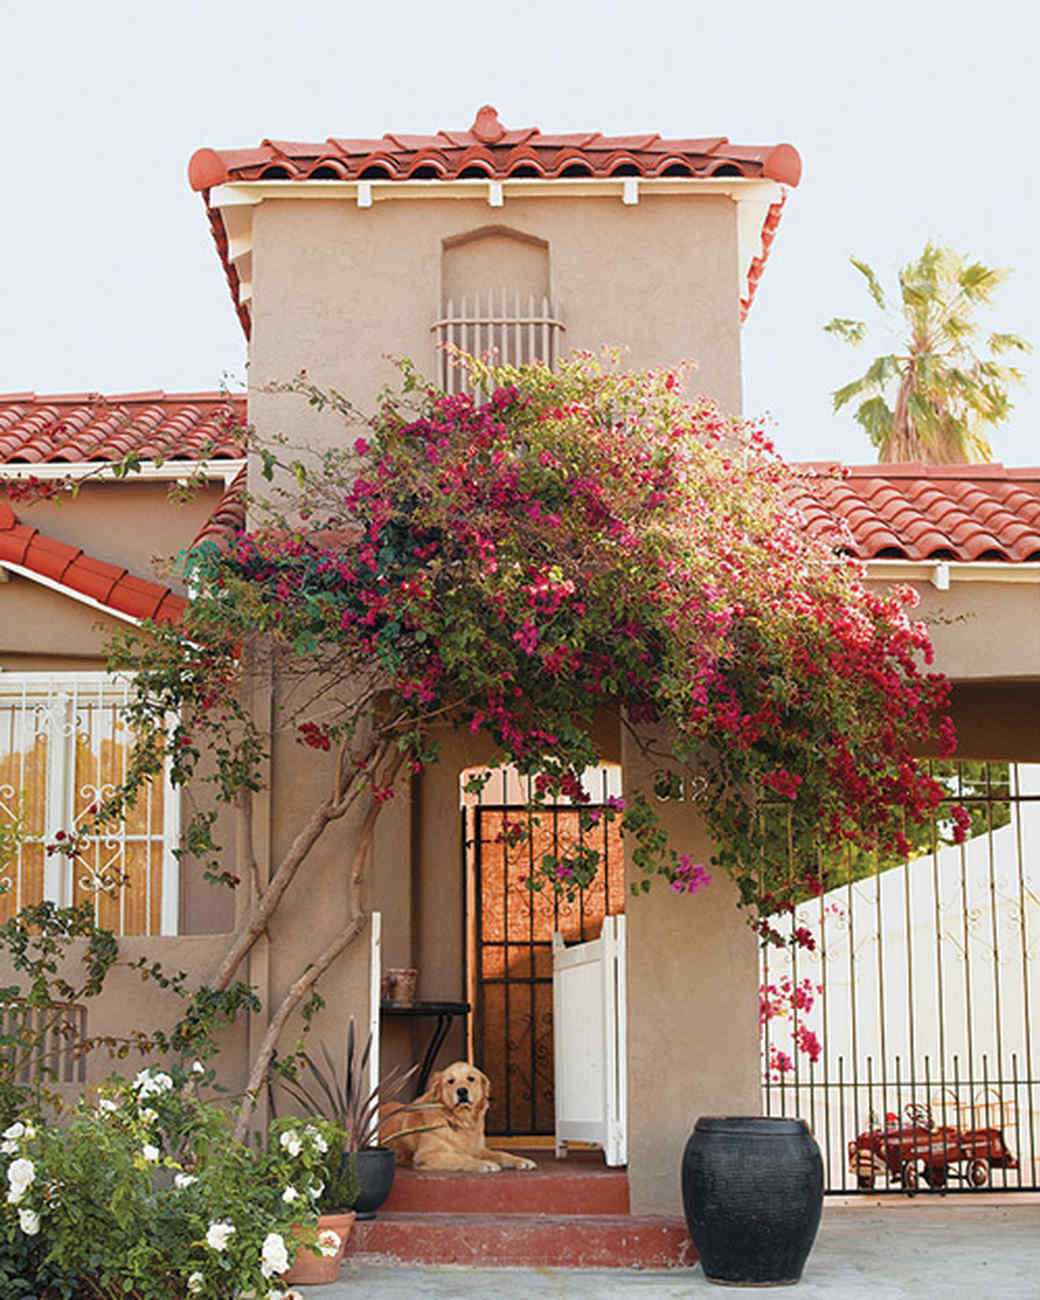 L A Houses: Home Tour: Spanish-Style Home